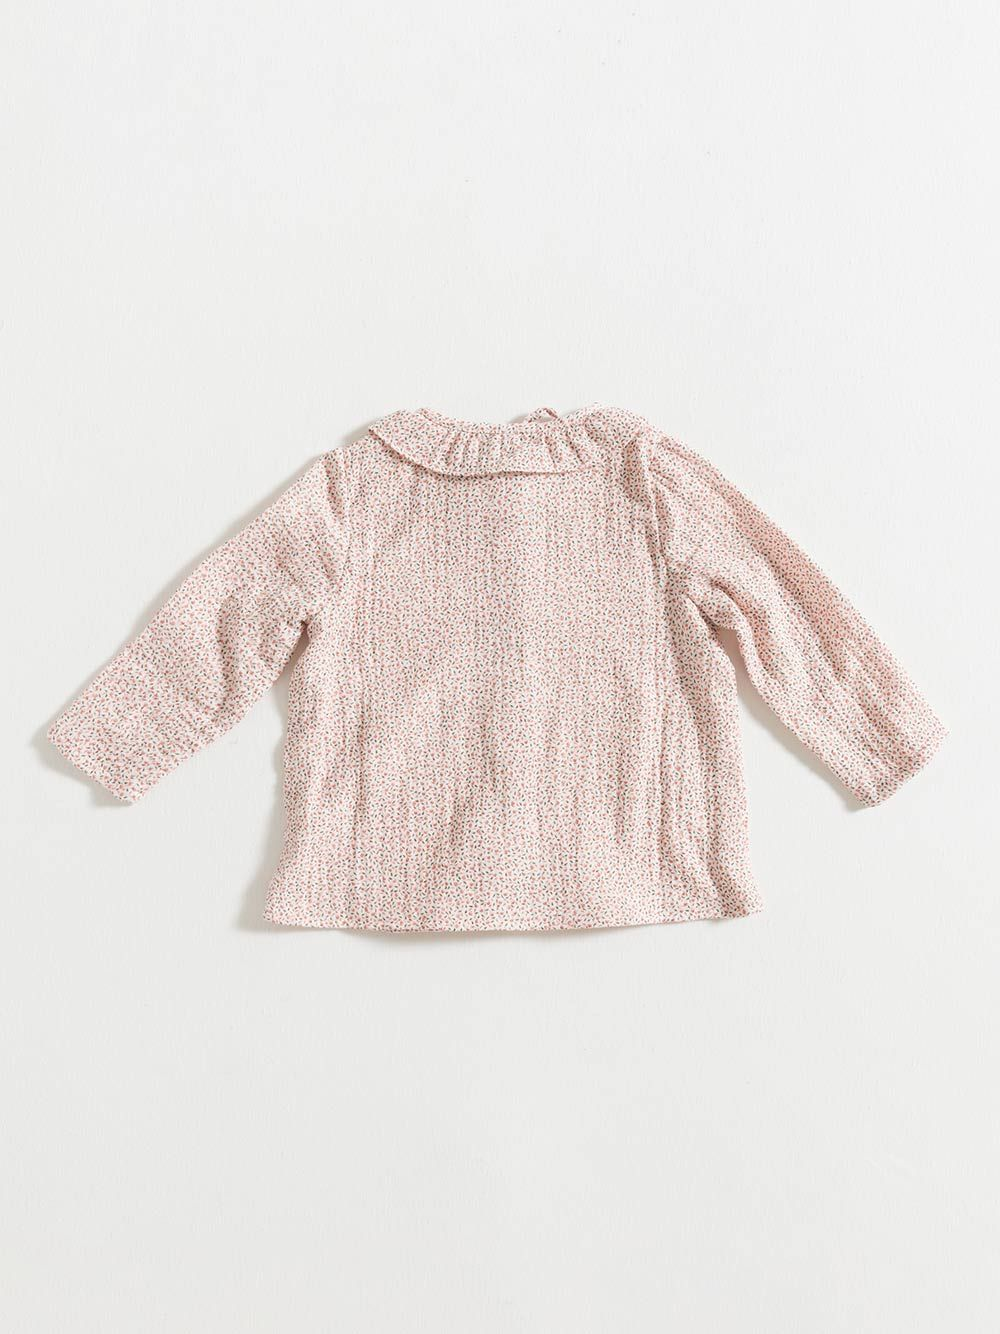 BLOUSE / PINK FLOWERS GAUZE | Grace Baby and Child